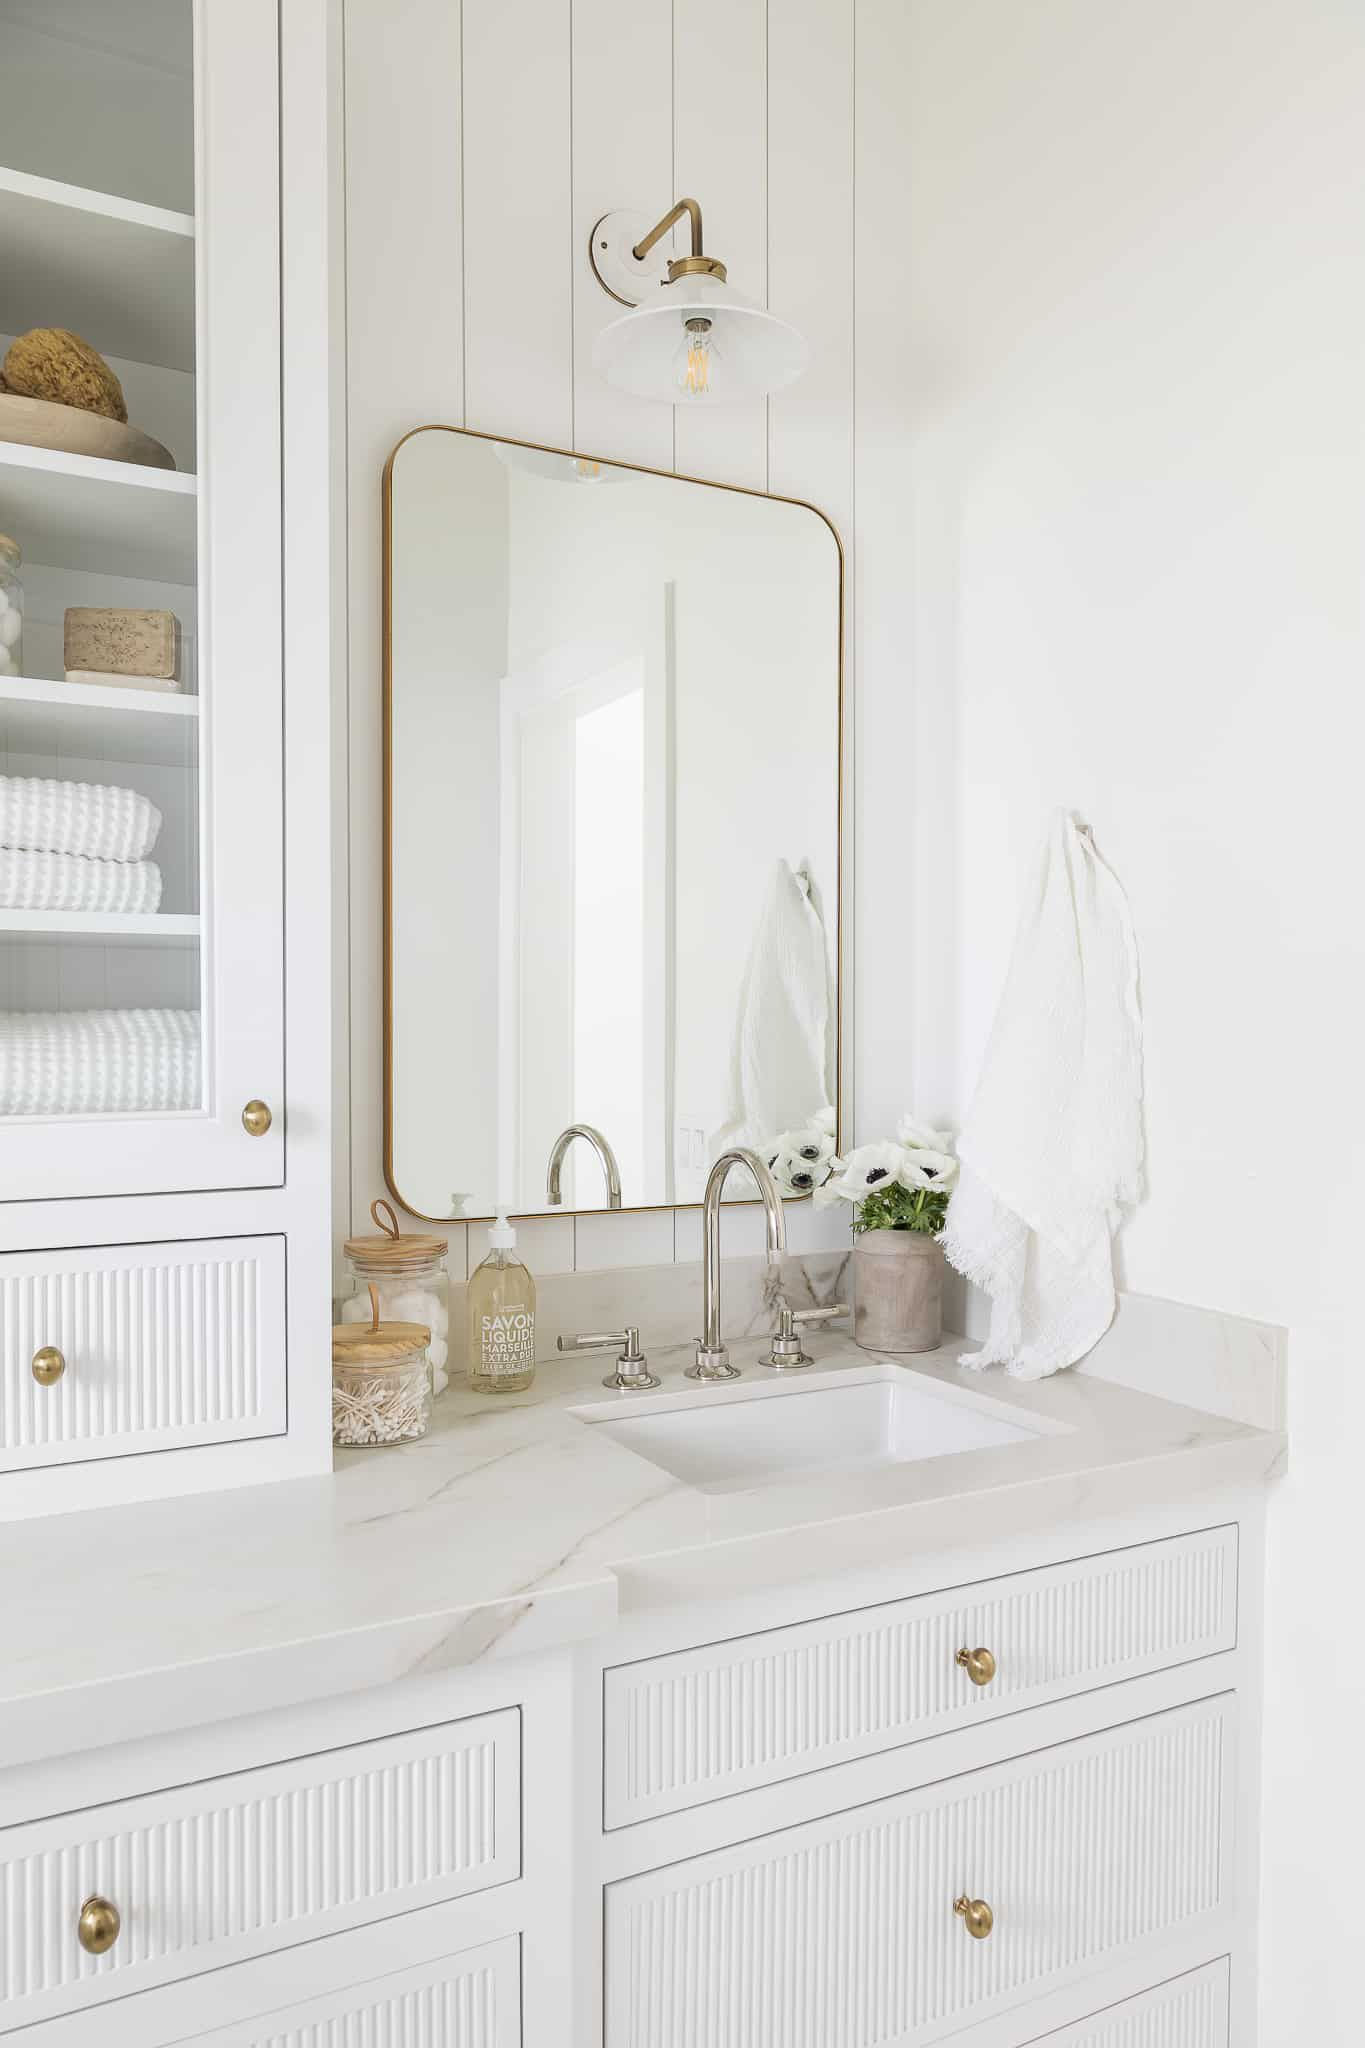 A small bathroom vanity equipped with shelves underneath and next to the sink